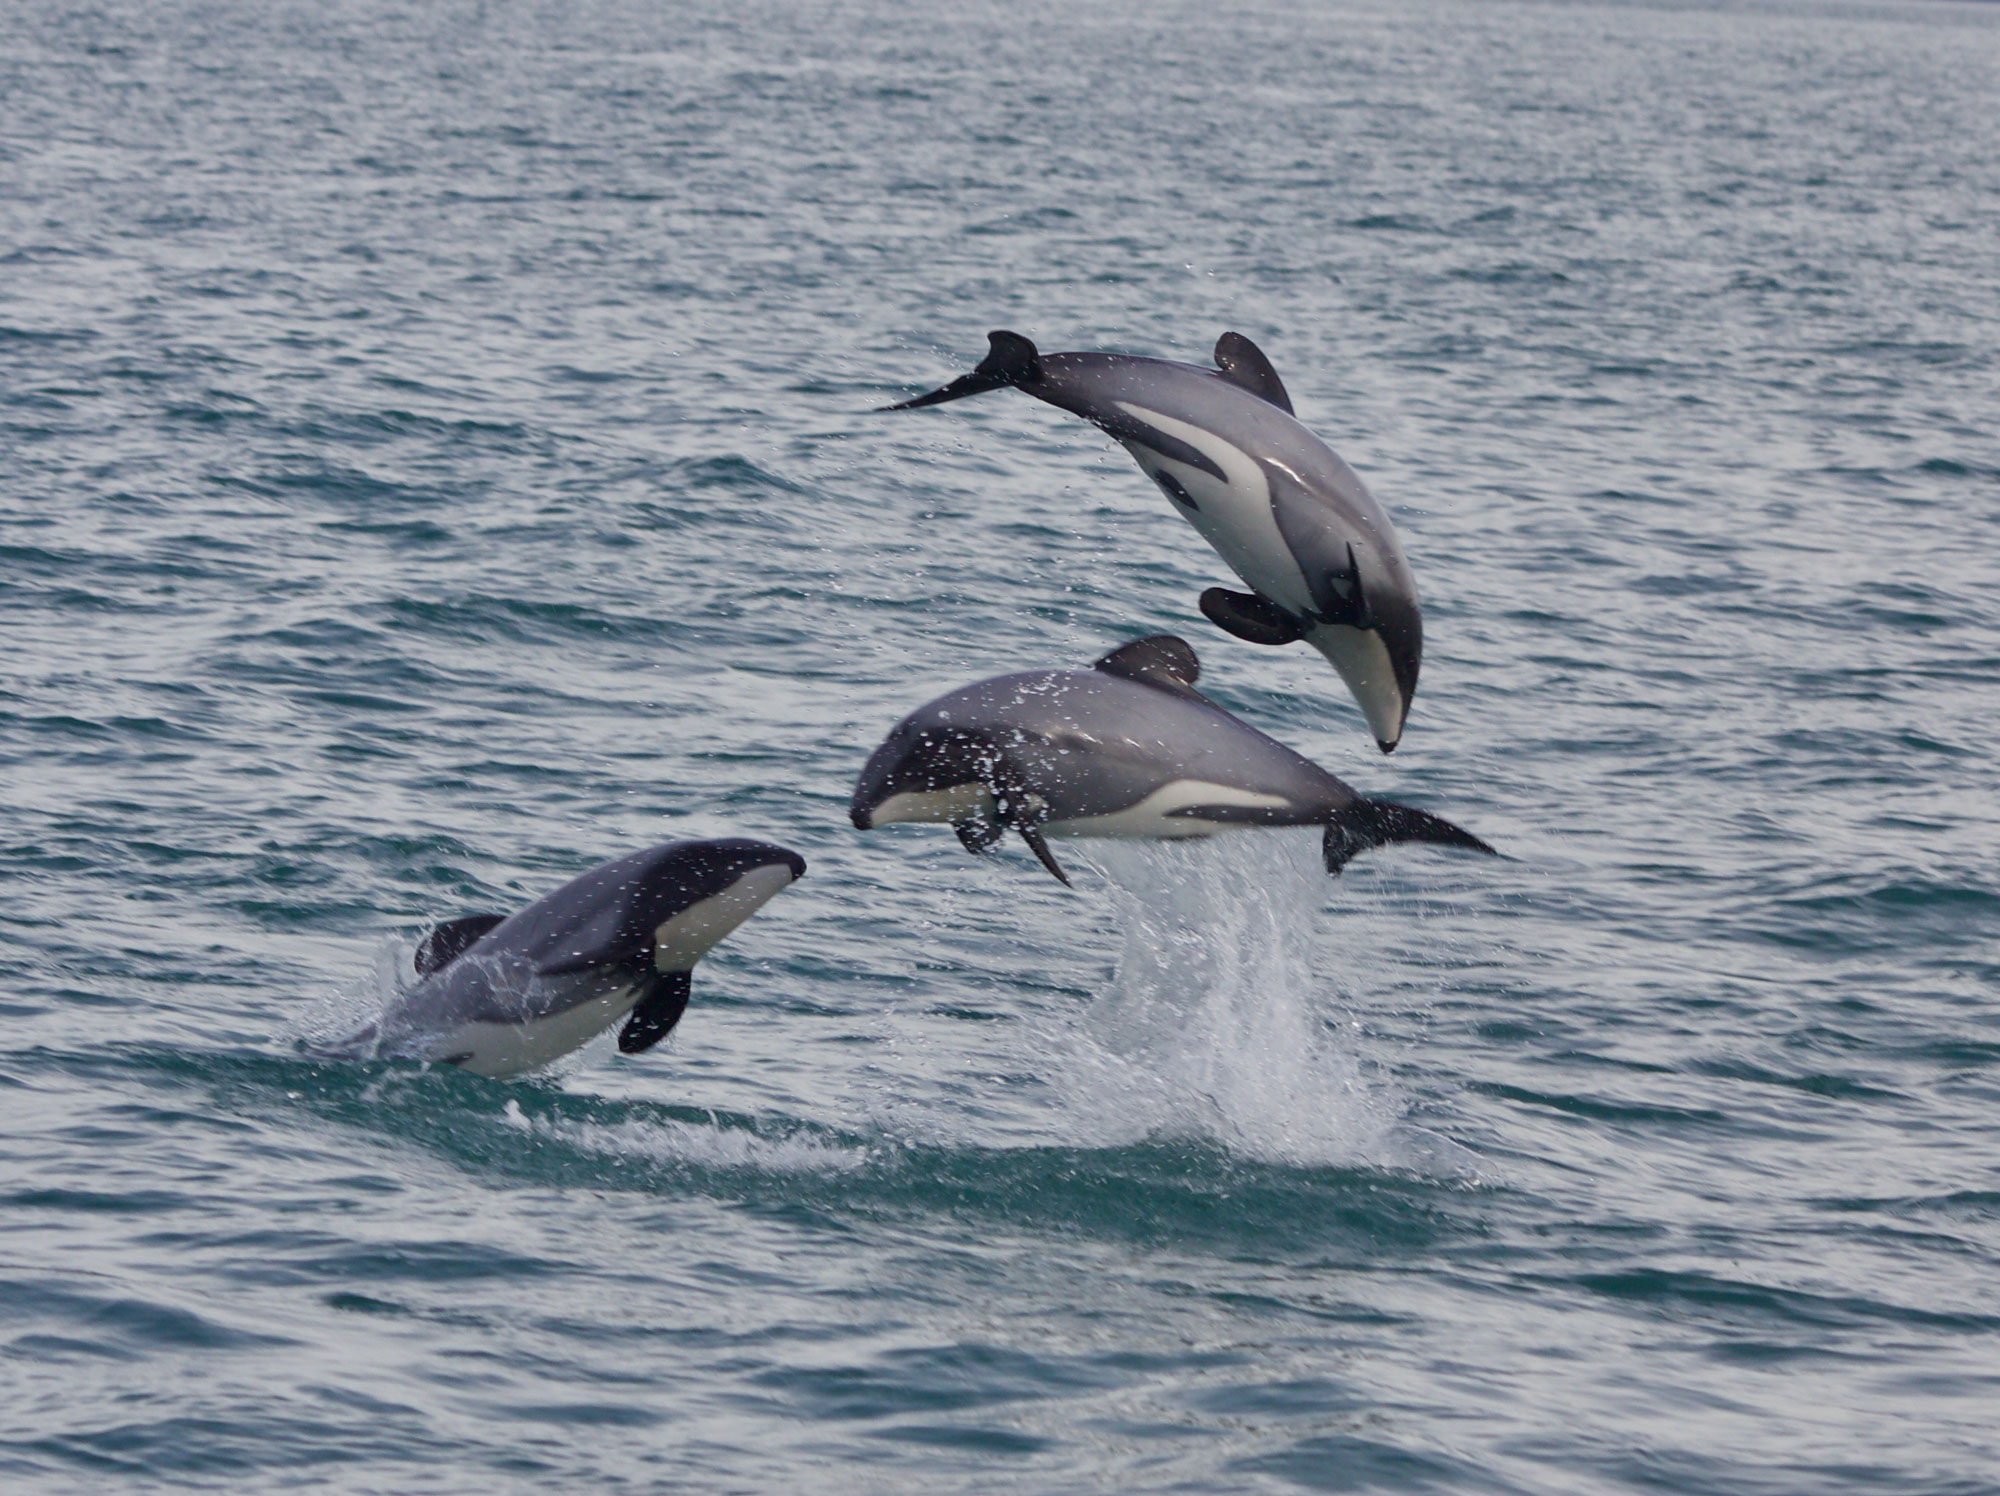 three dolphins leaping in the air